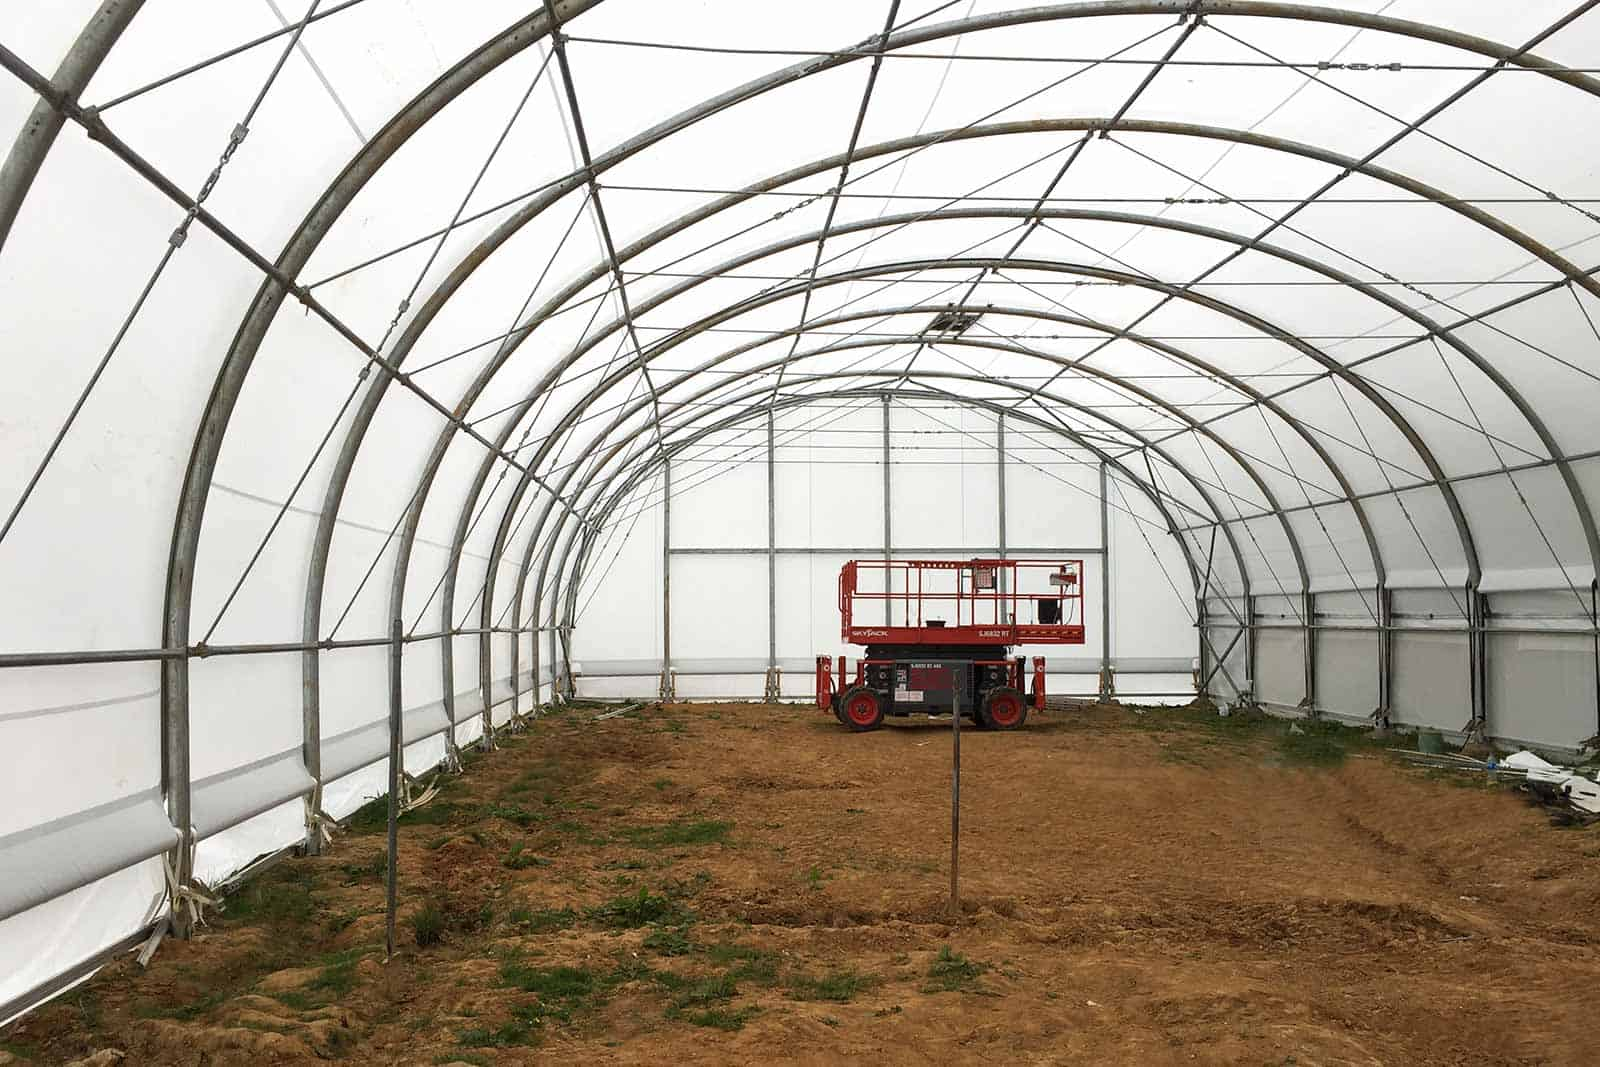 Internal view of a McGregor Polytunnel - steel-framed fabric commercial structure